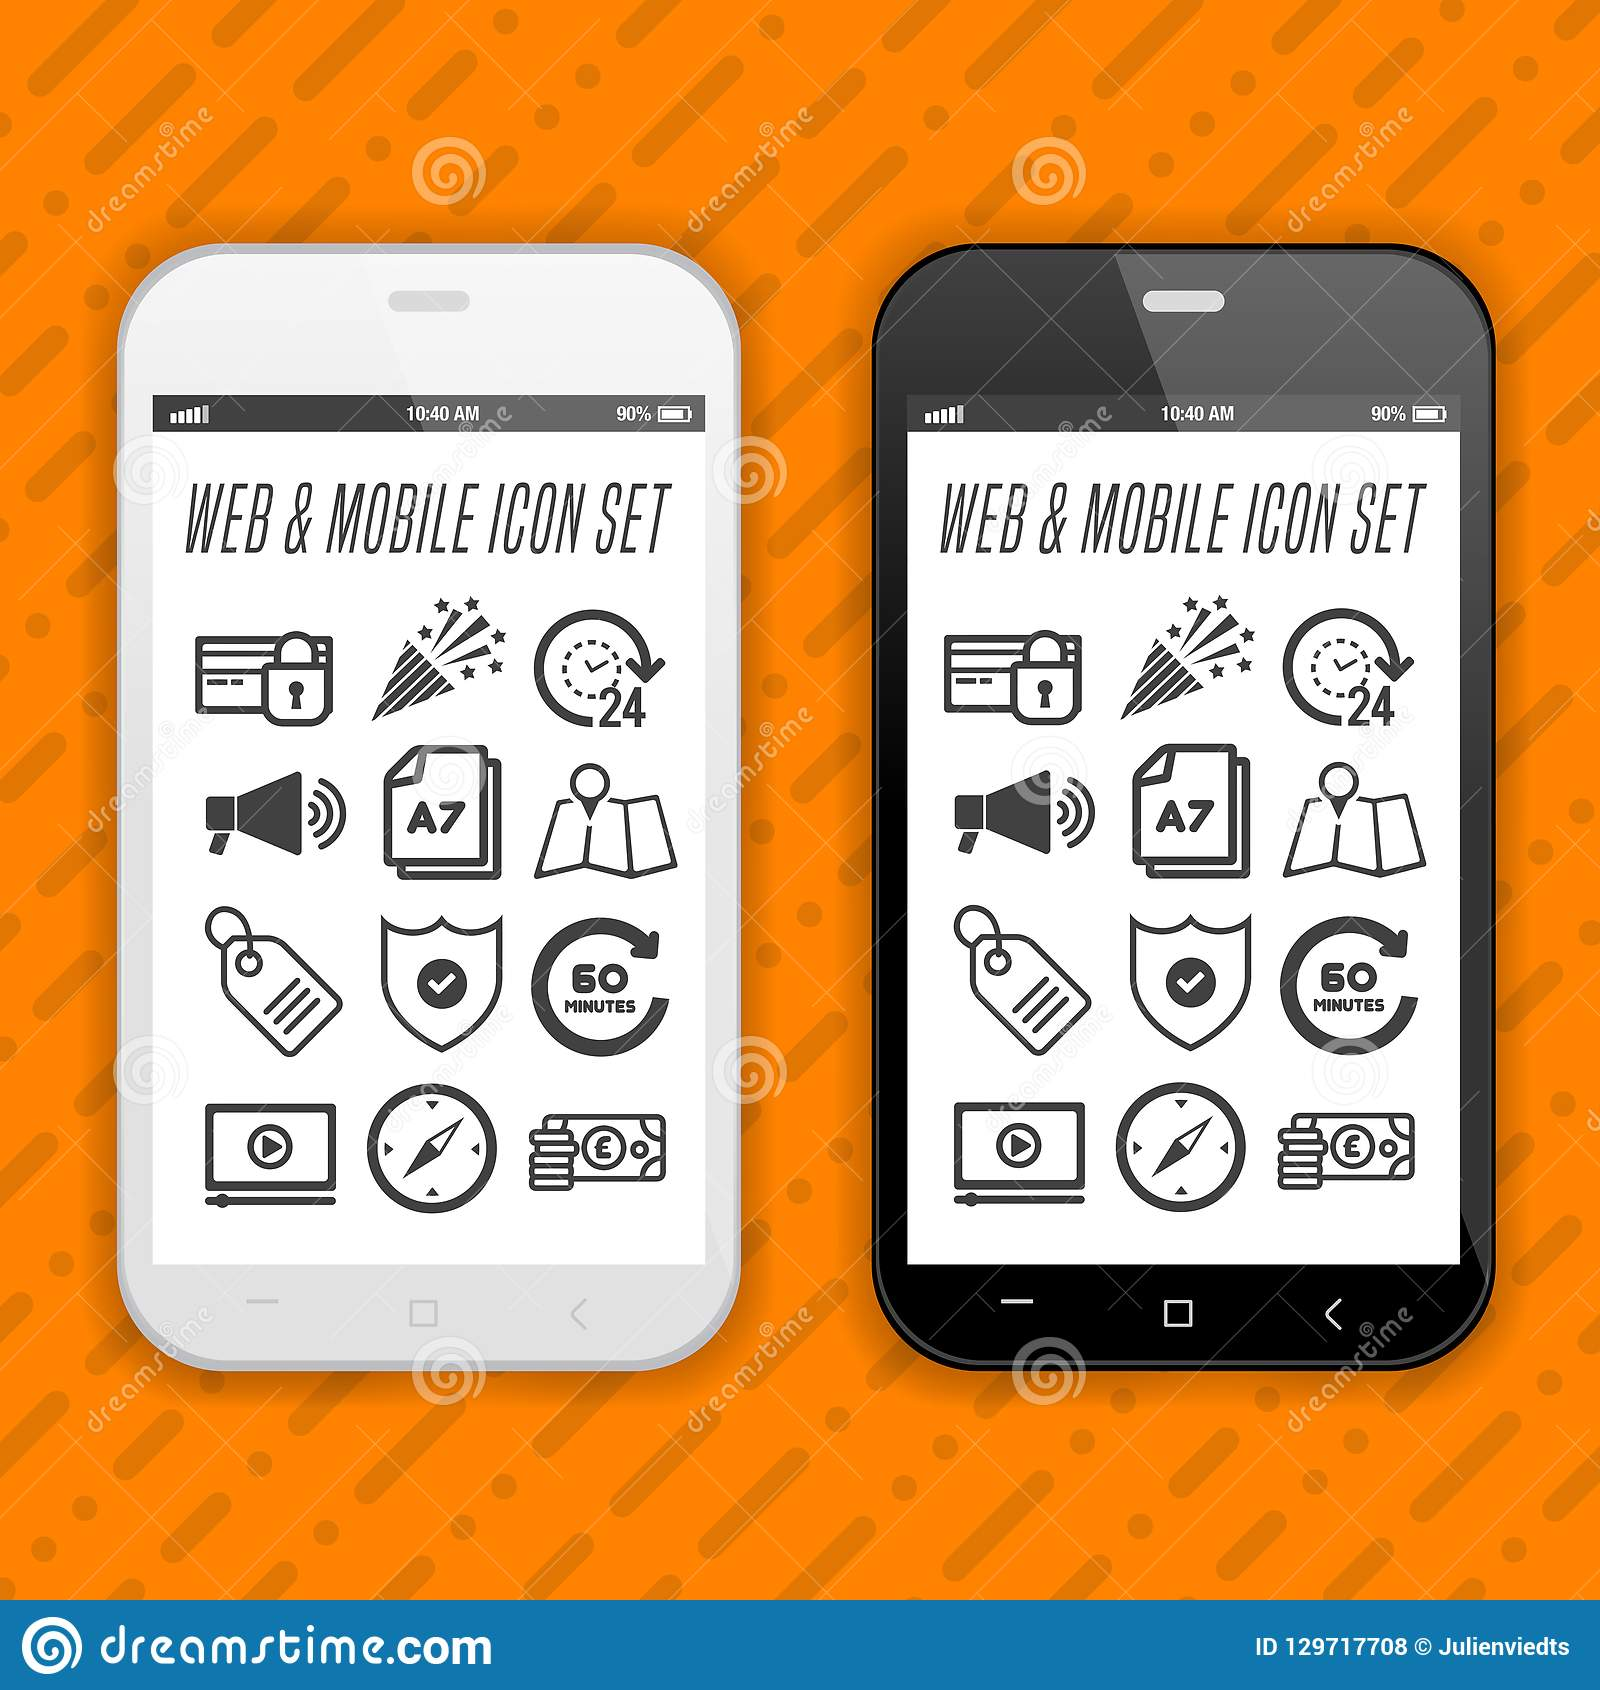 Elegant smartphones with icons, applications. Mobile phone realistic Eps10 vector design.